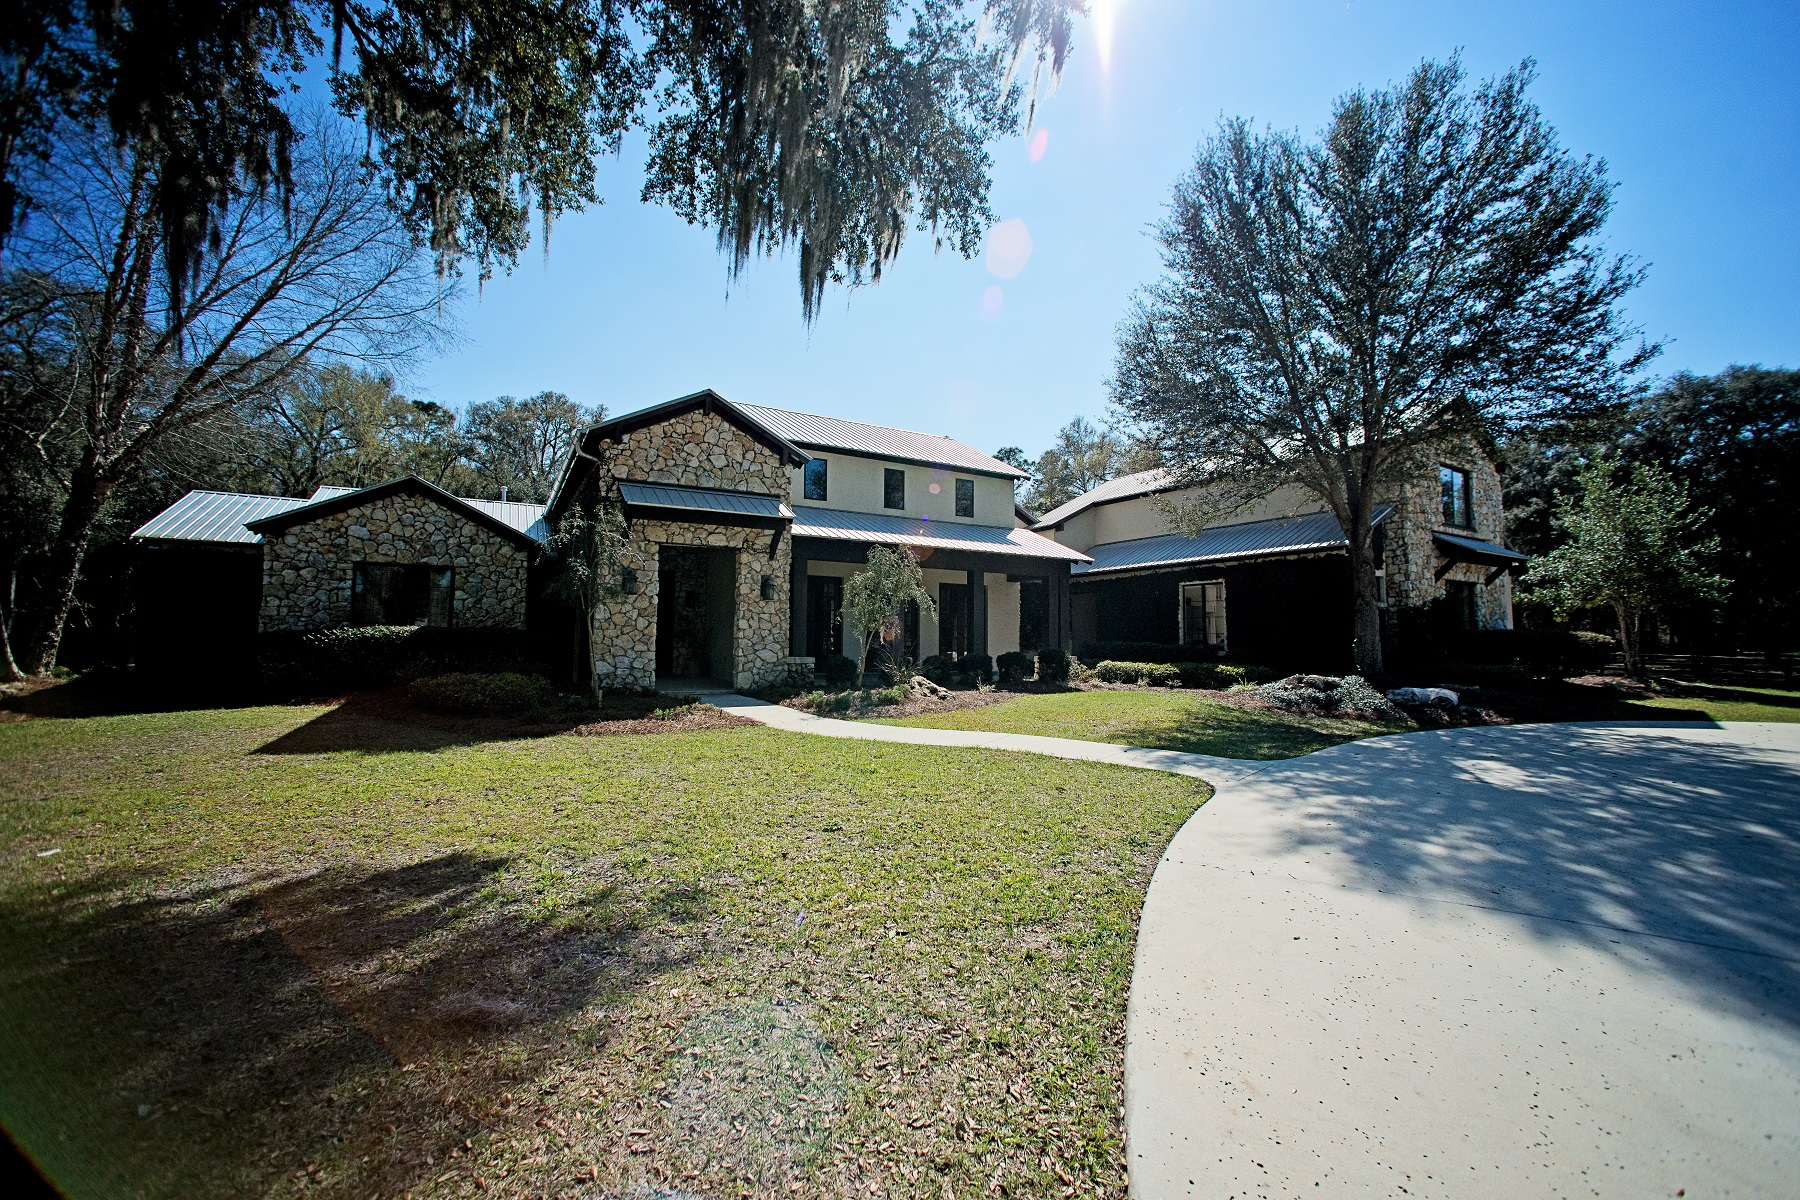 Single Family Home for Sale at SUMMERFIELD 4300 Highway 42 Summerfield, Florida, 34491 United States